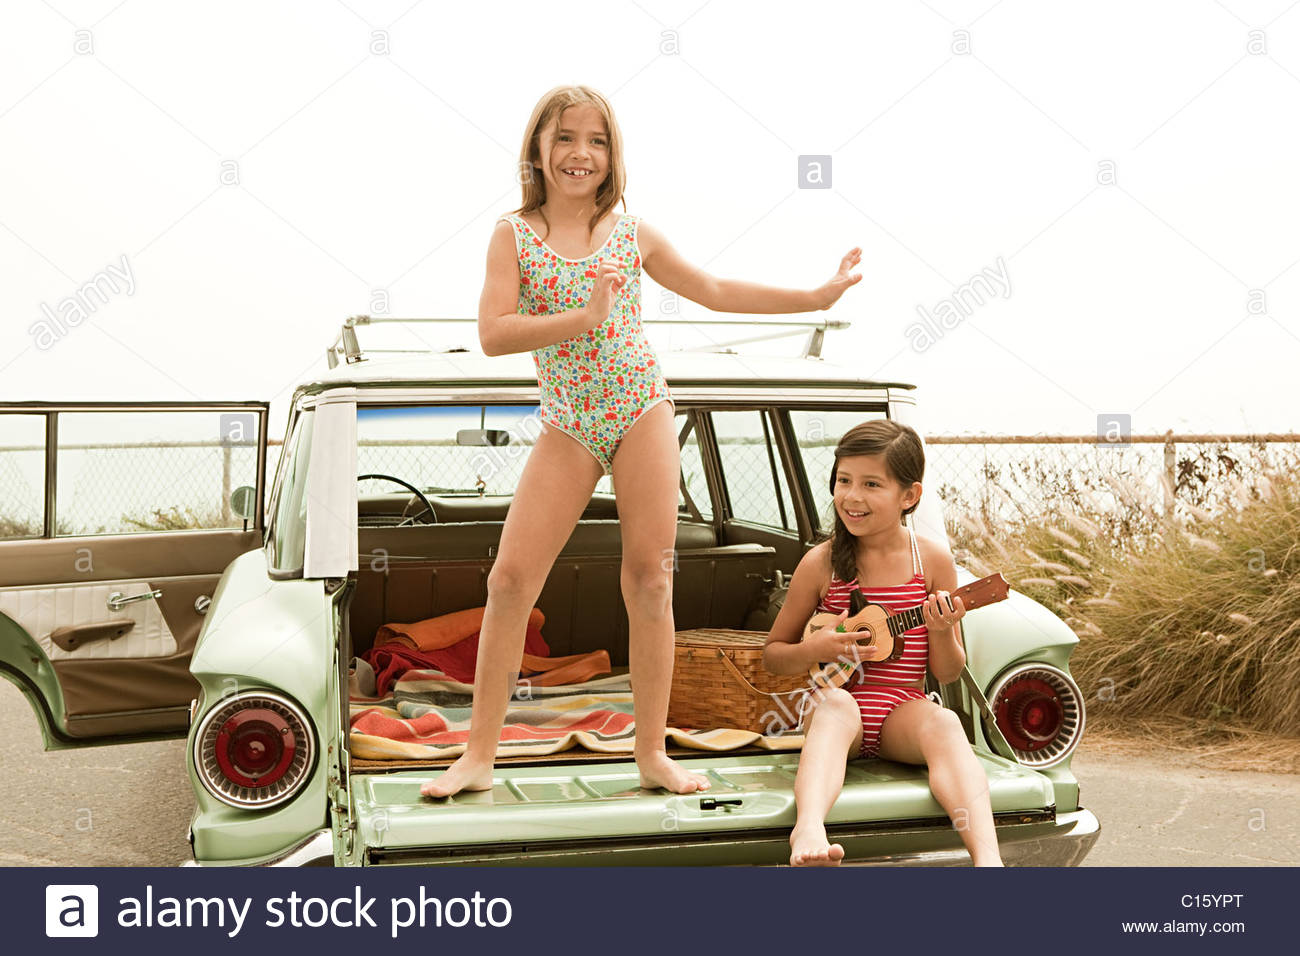 Girl dancing on car boot, another girl playing guitar - Stock Image